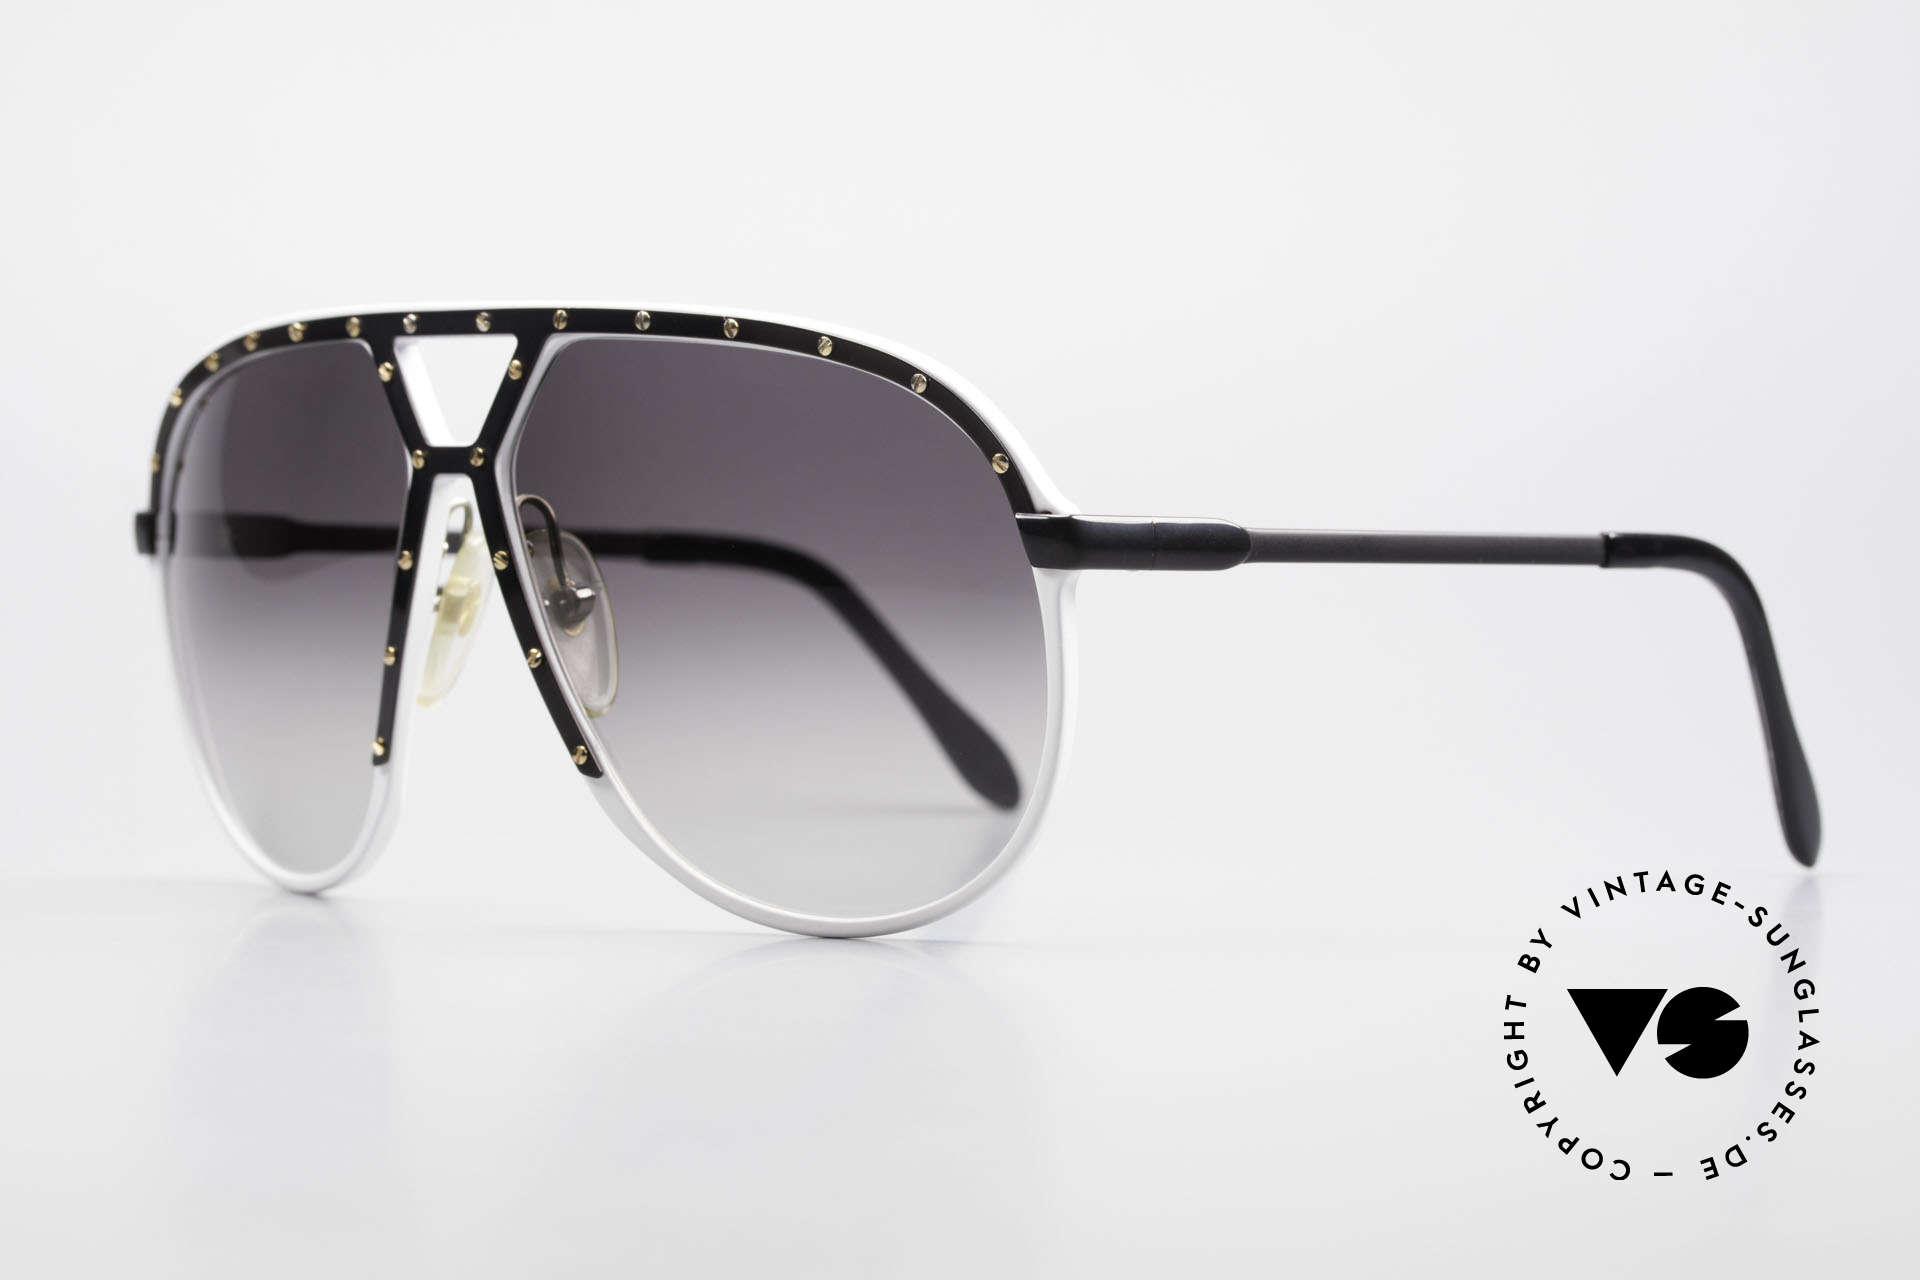 Alpina M1 Limited 80's White Black Gold, with dark gray-gradient sun lenses (100% UV prot.), Made for Men